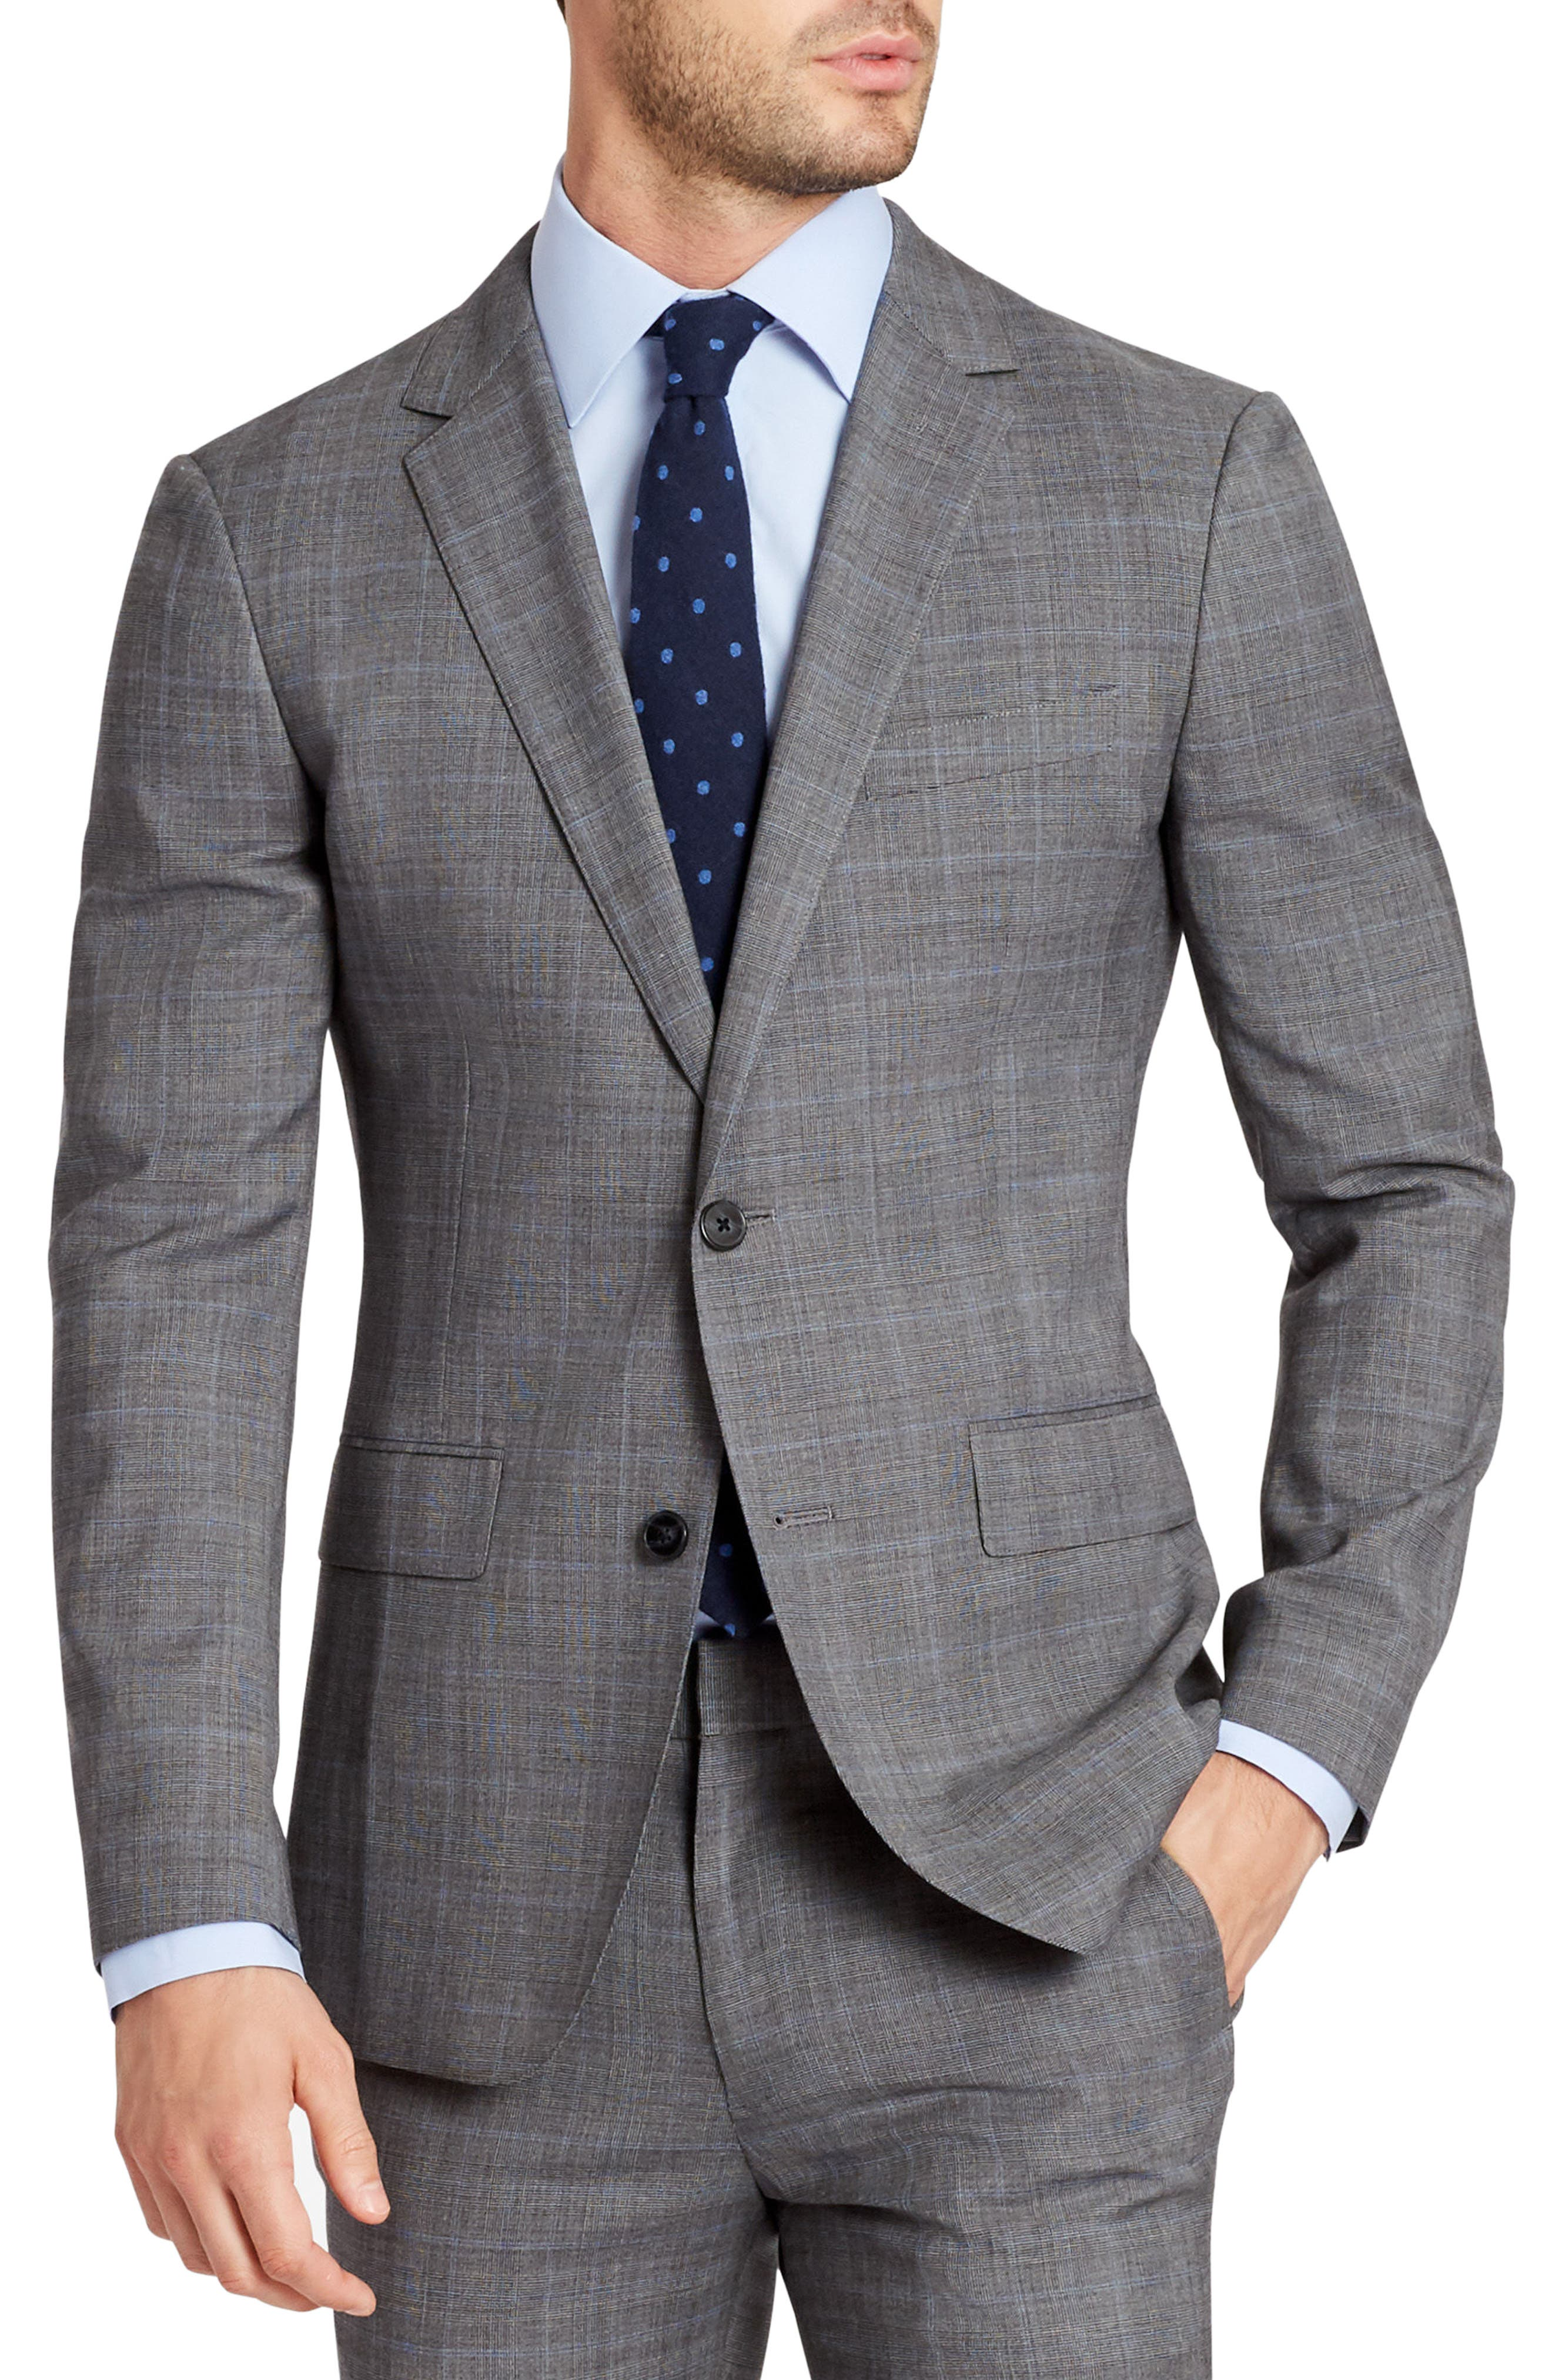 Jetsetter Slim Fit Plaid Stretch Wool Sport Coat,                             Main thumbnail 1, color,                             020